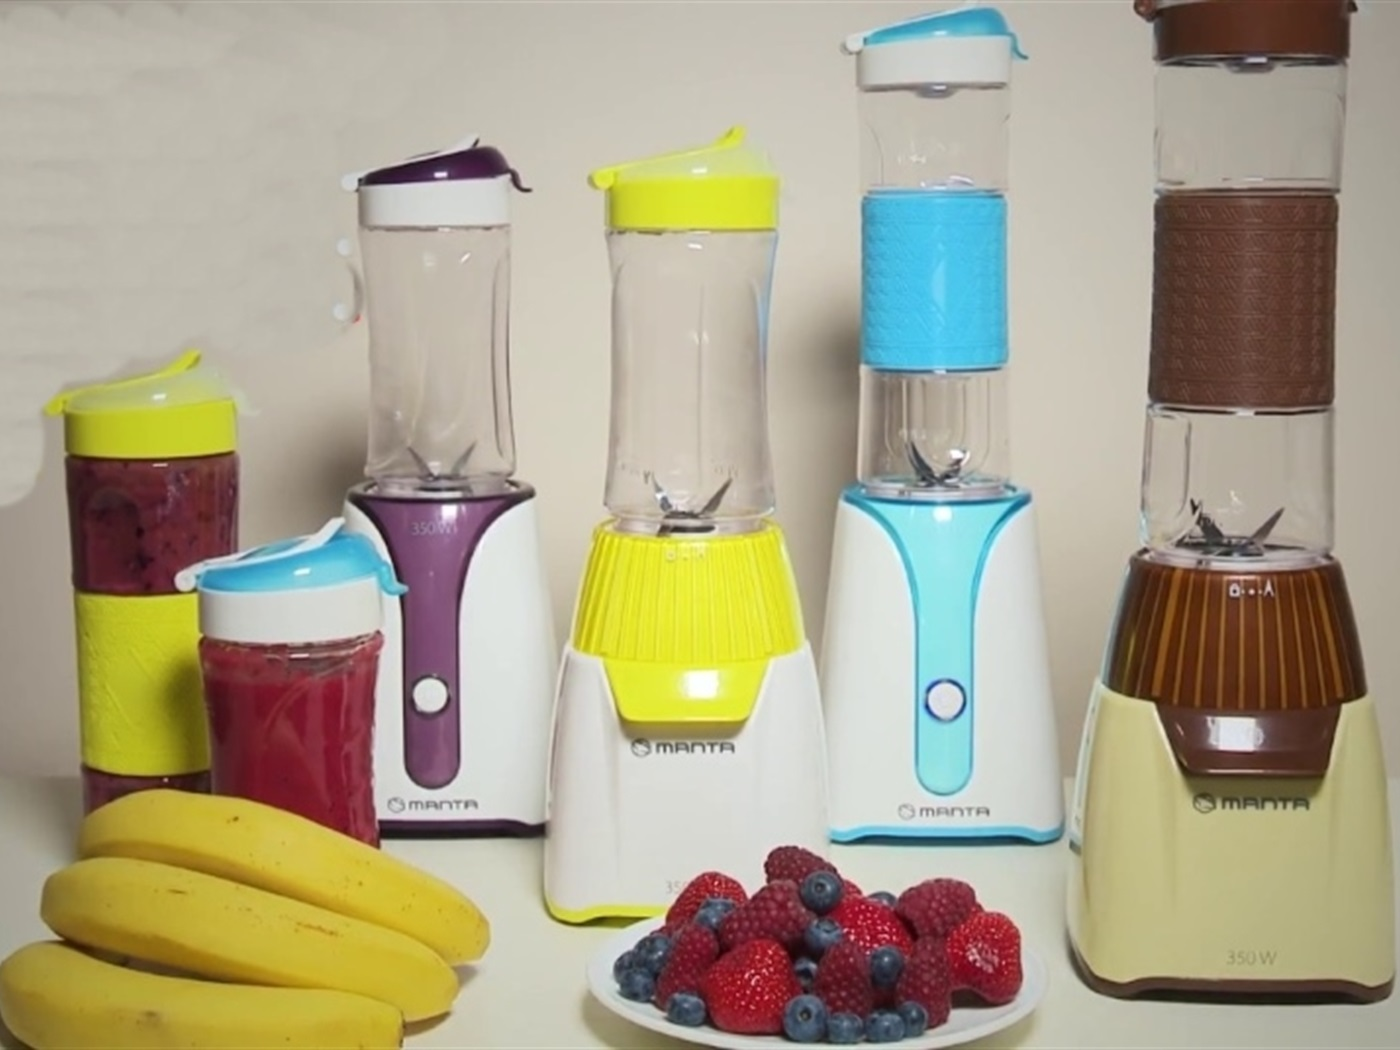 MANTA blender SMOOTHIE SBL920